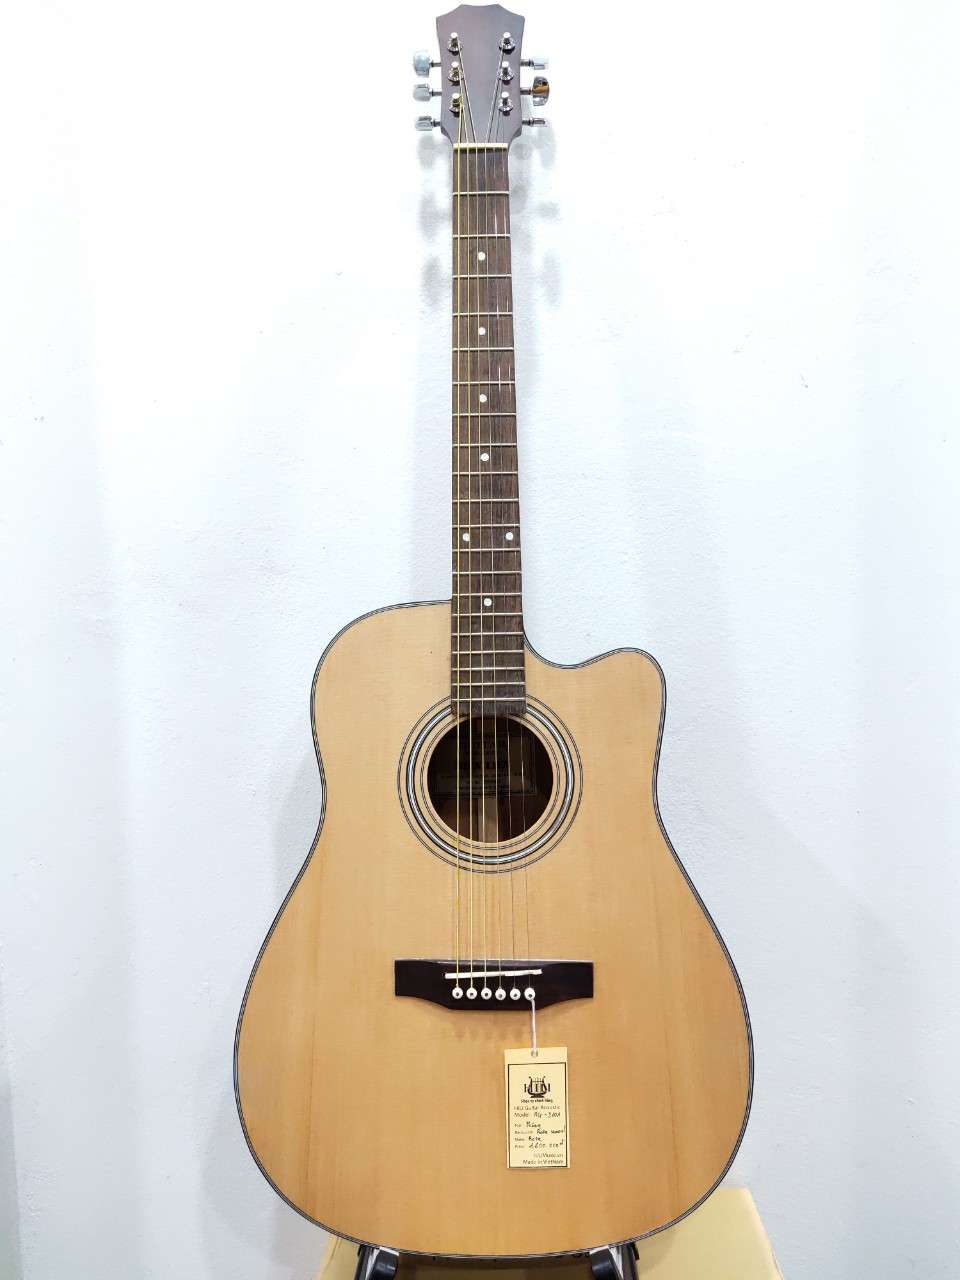 Đàn Guitar Acoustic AG-210A made in VietNam